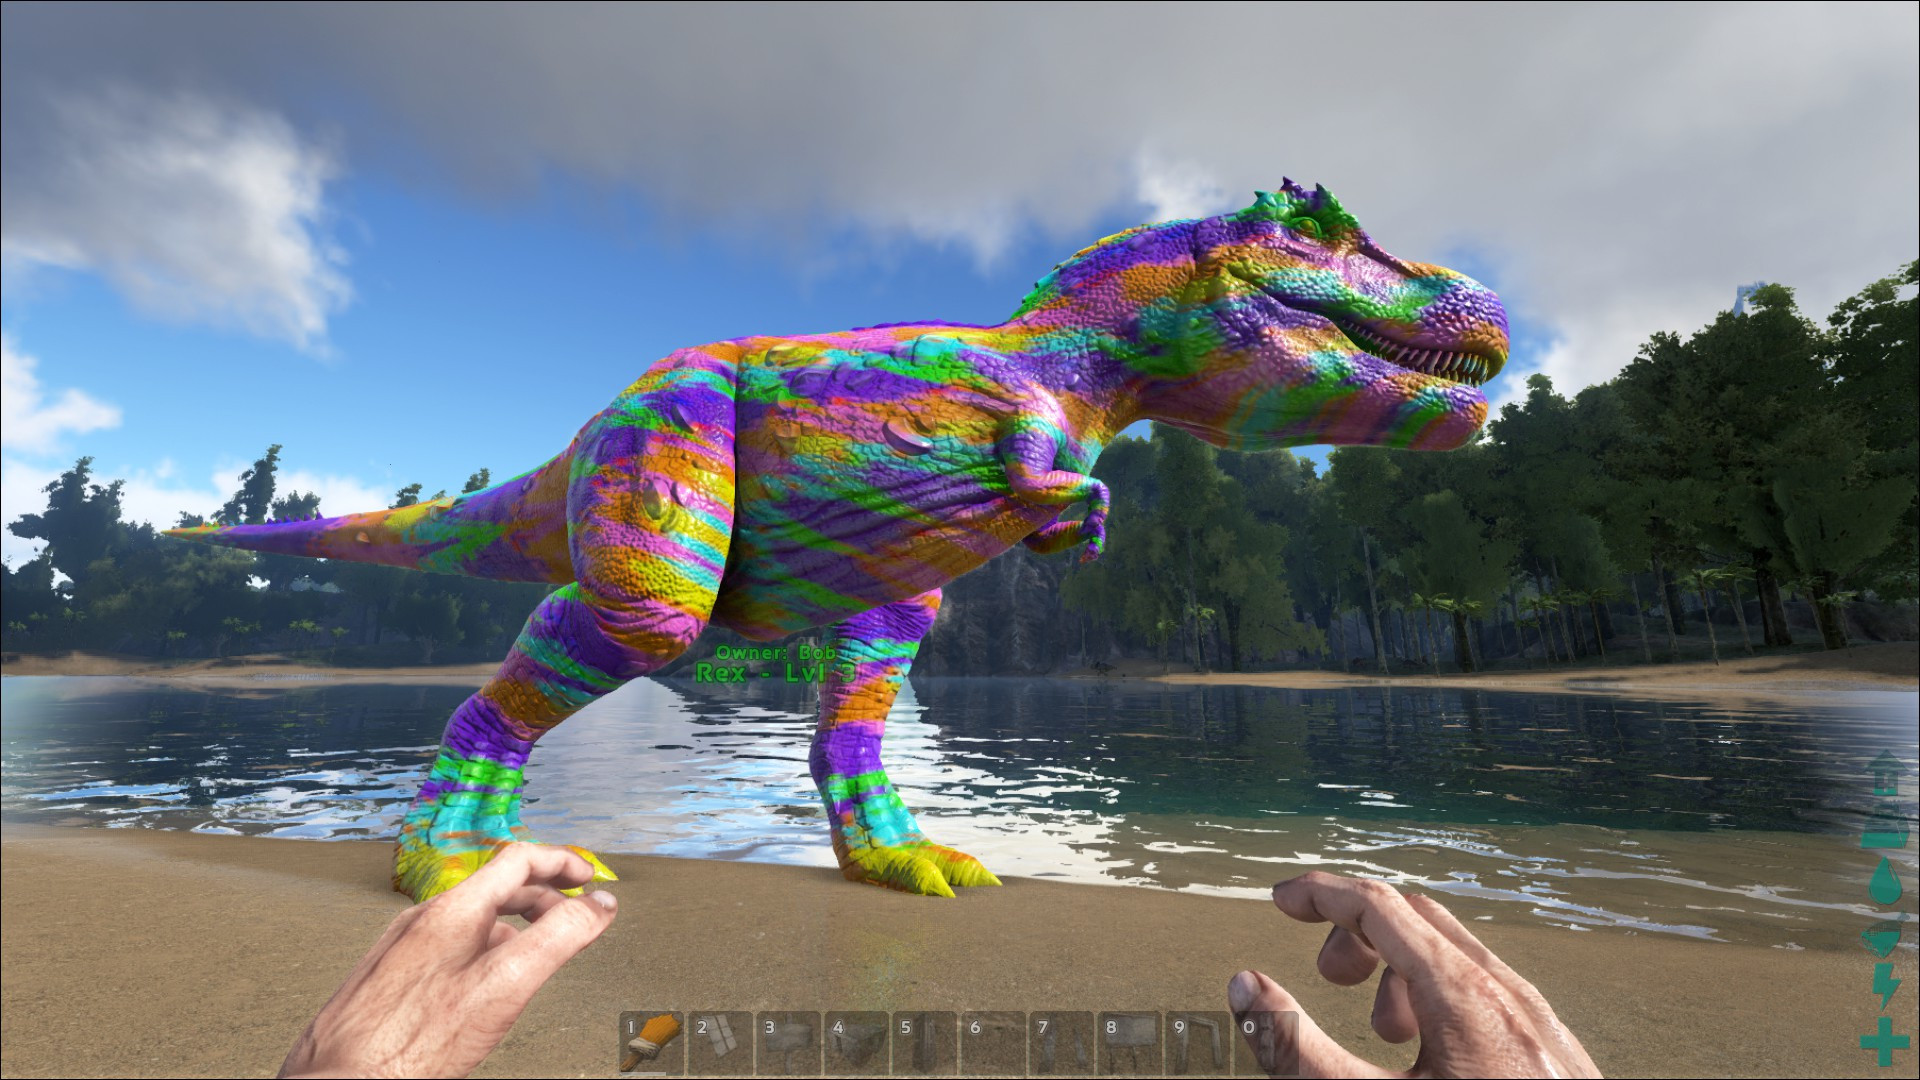 Best ideas about Ark Paint Colors . Save or Pin Steam munity Guide Ark Paint Converter Convert Now.